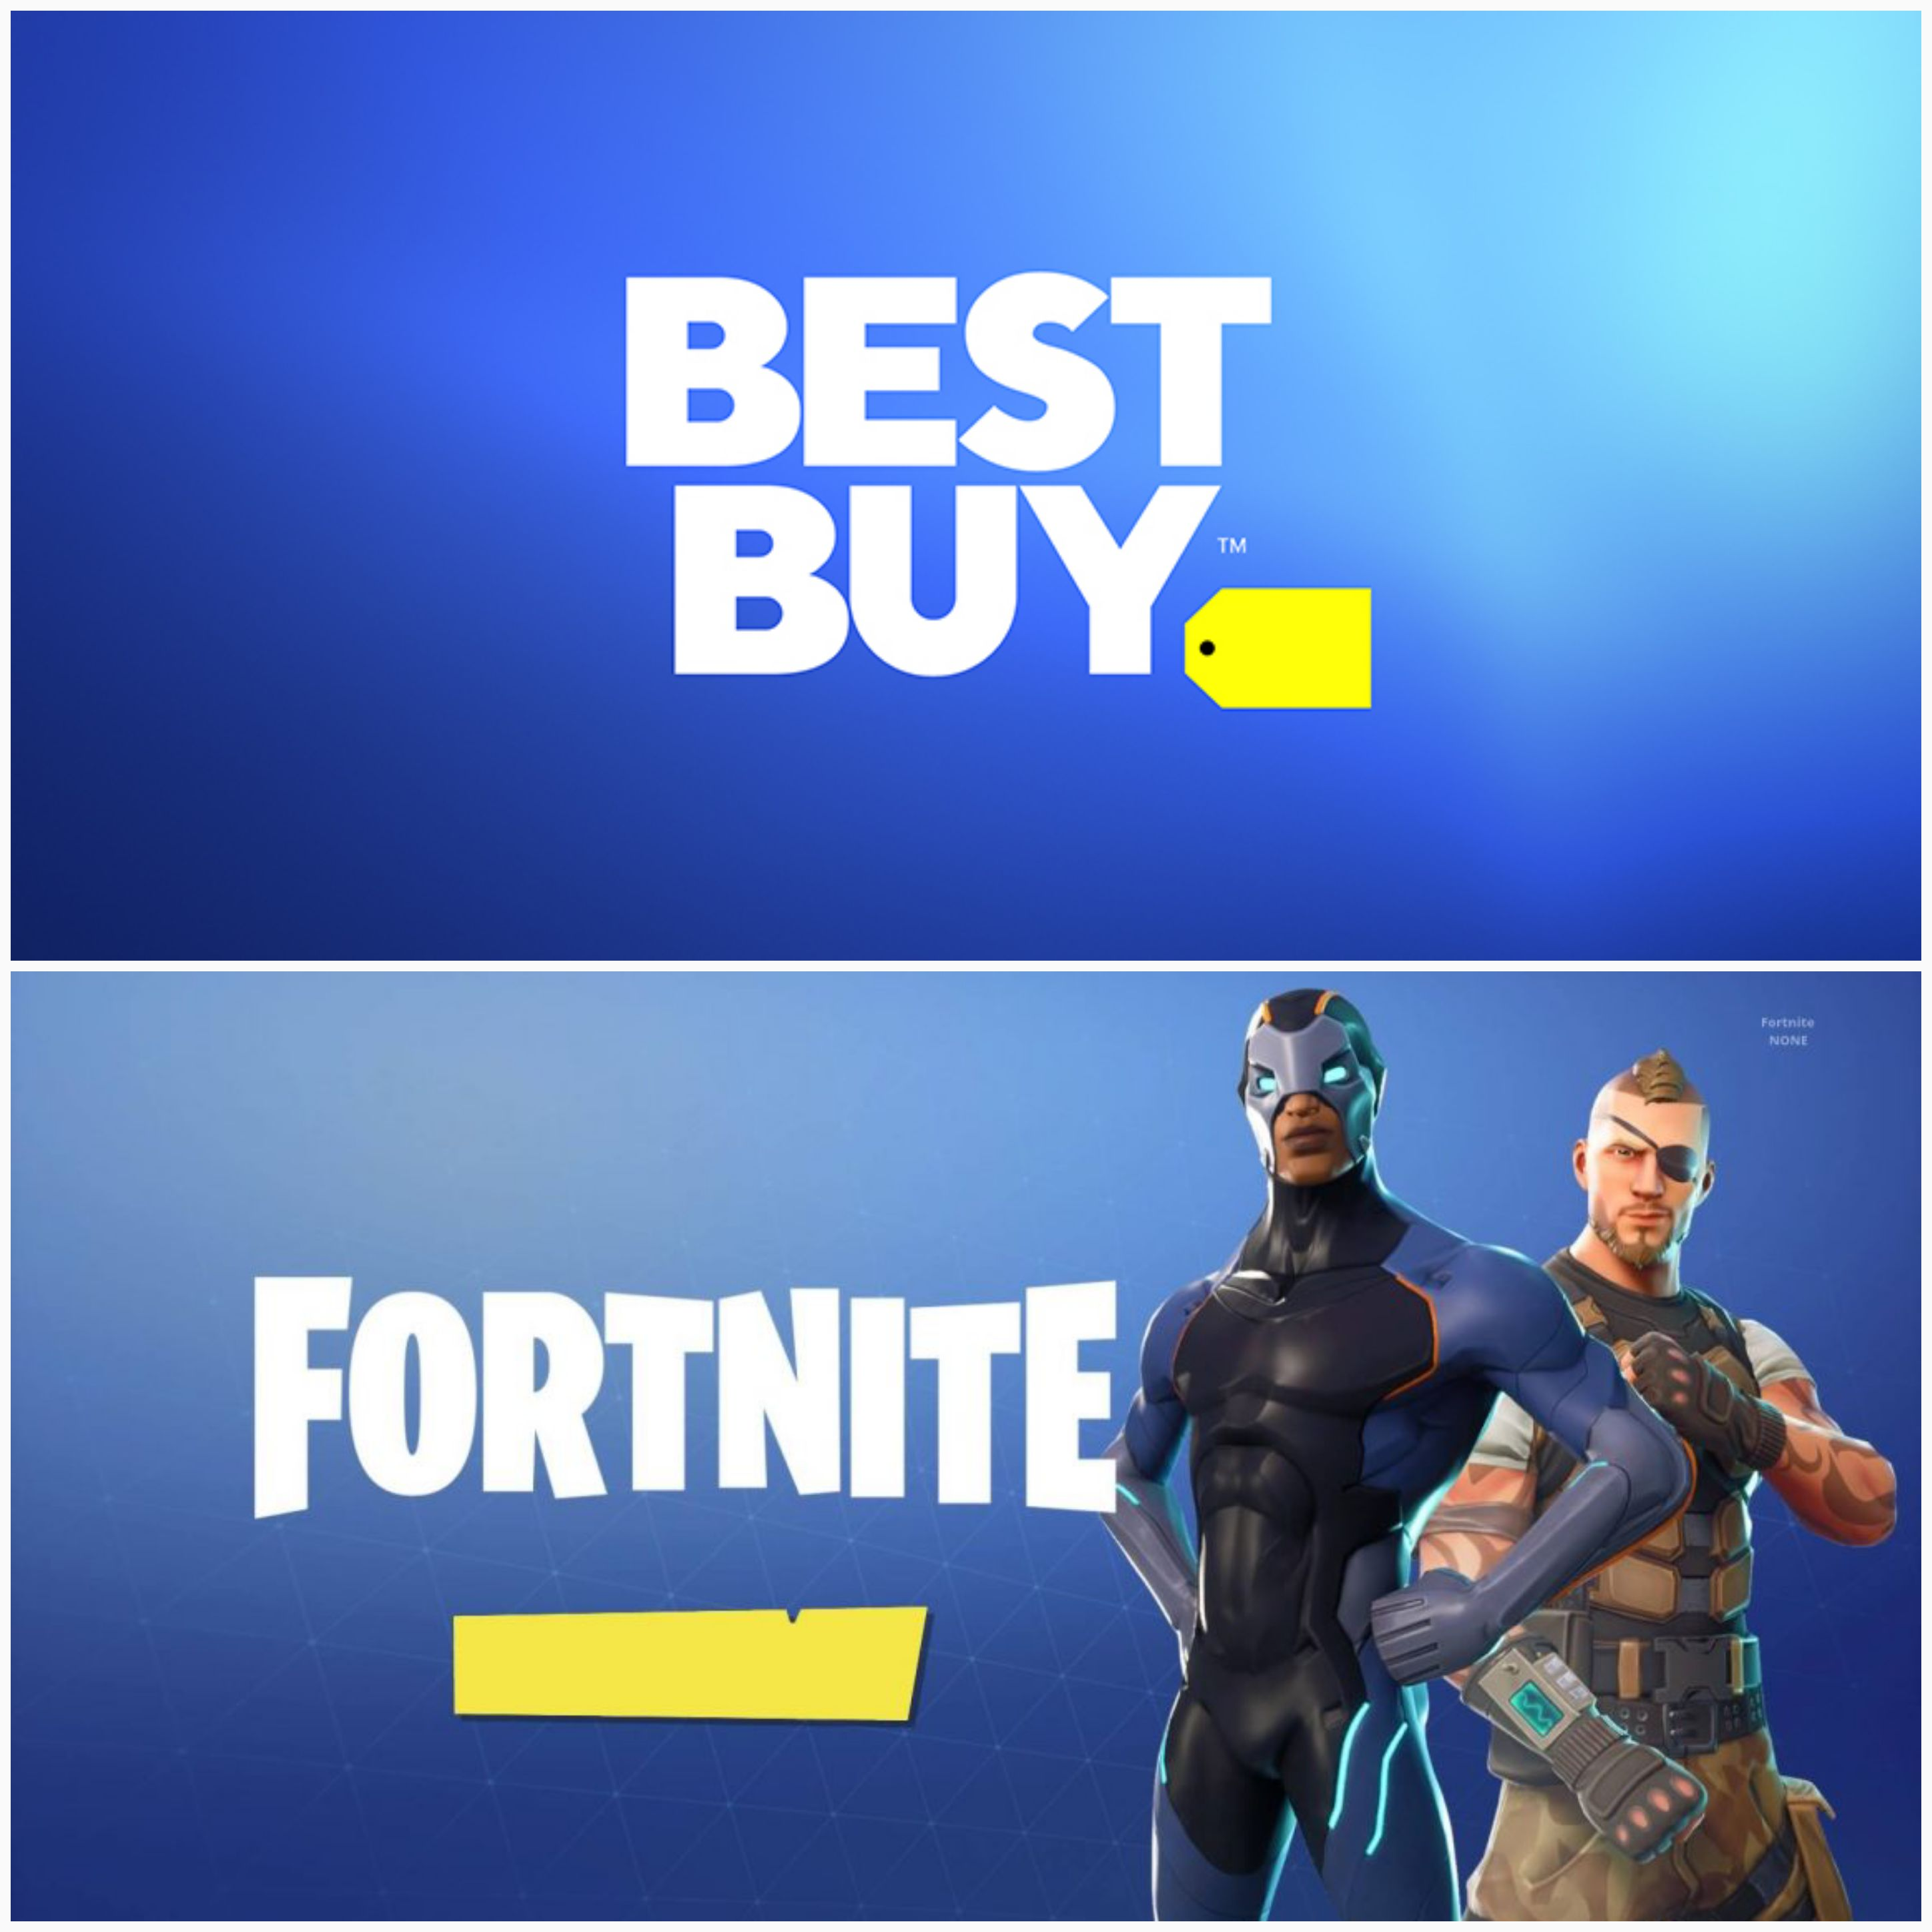 Best Buy Logo - Wait a second, this new Best Buy logo looks familiar? : FortNiteBR